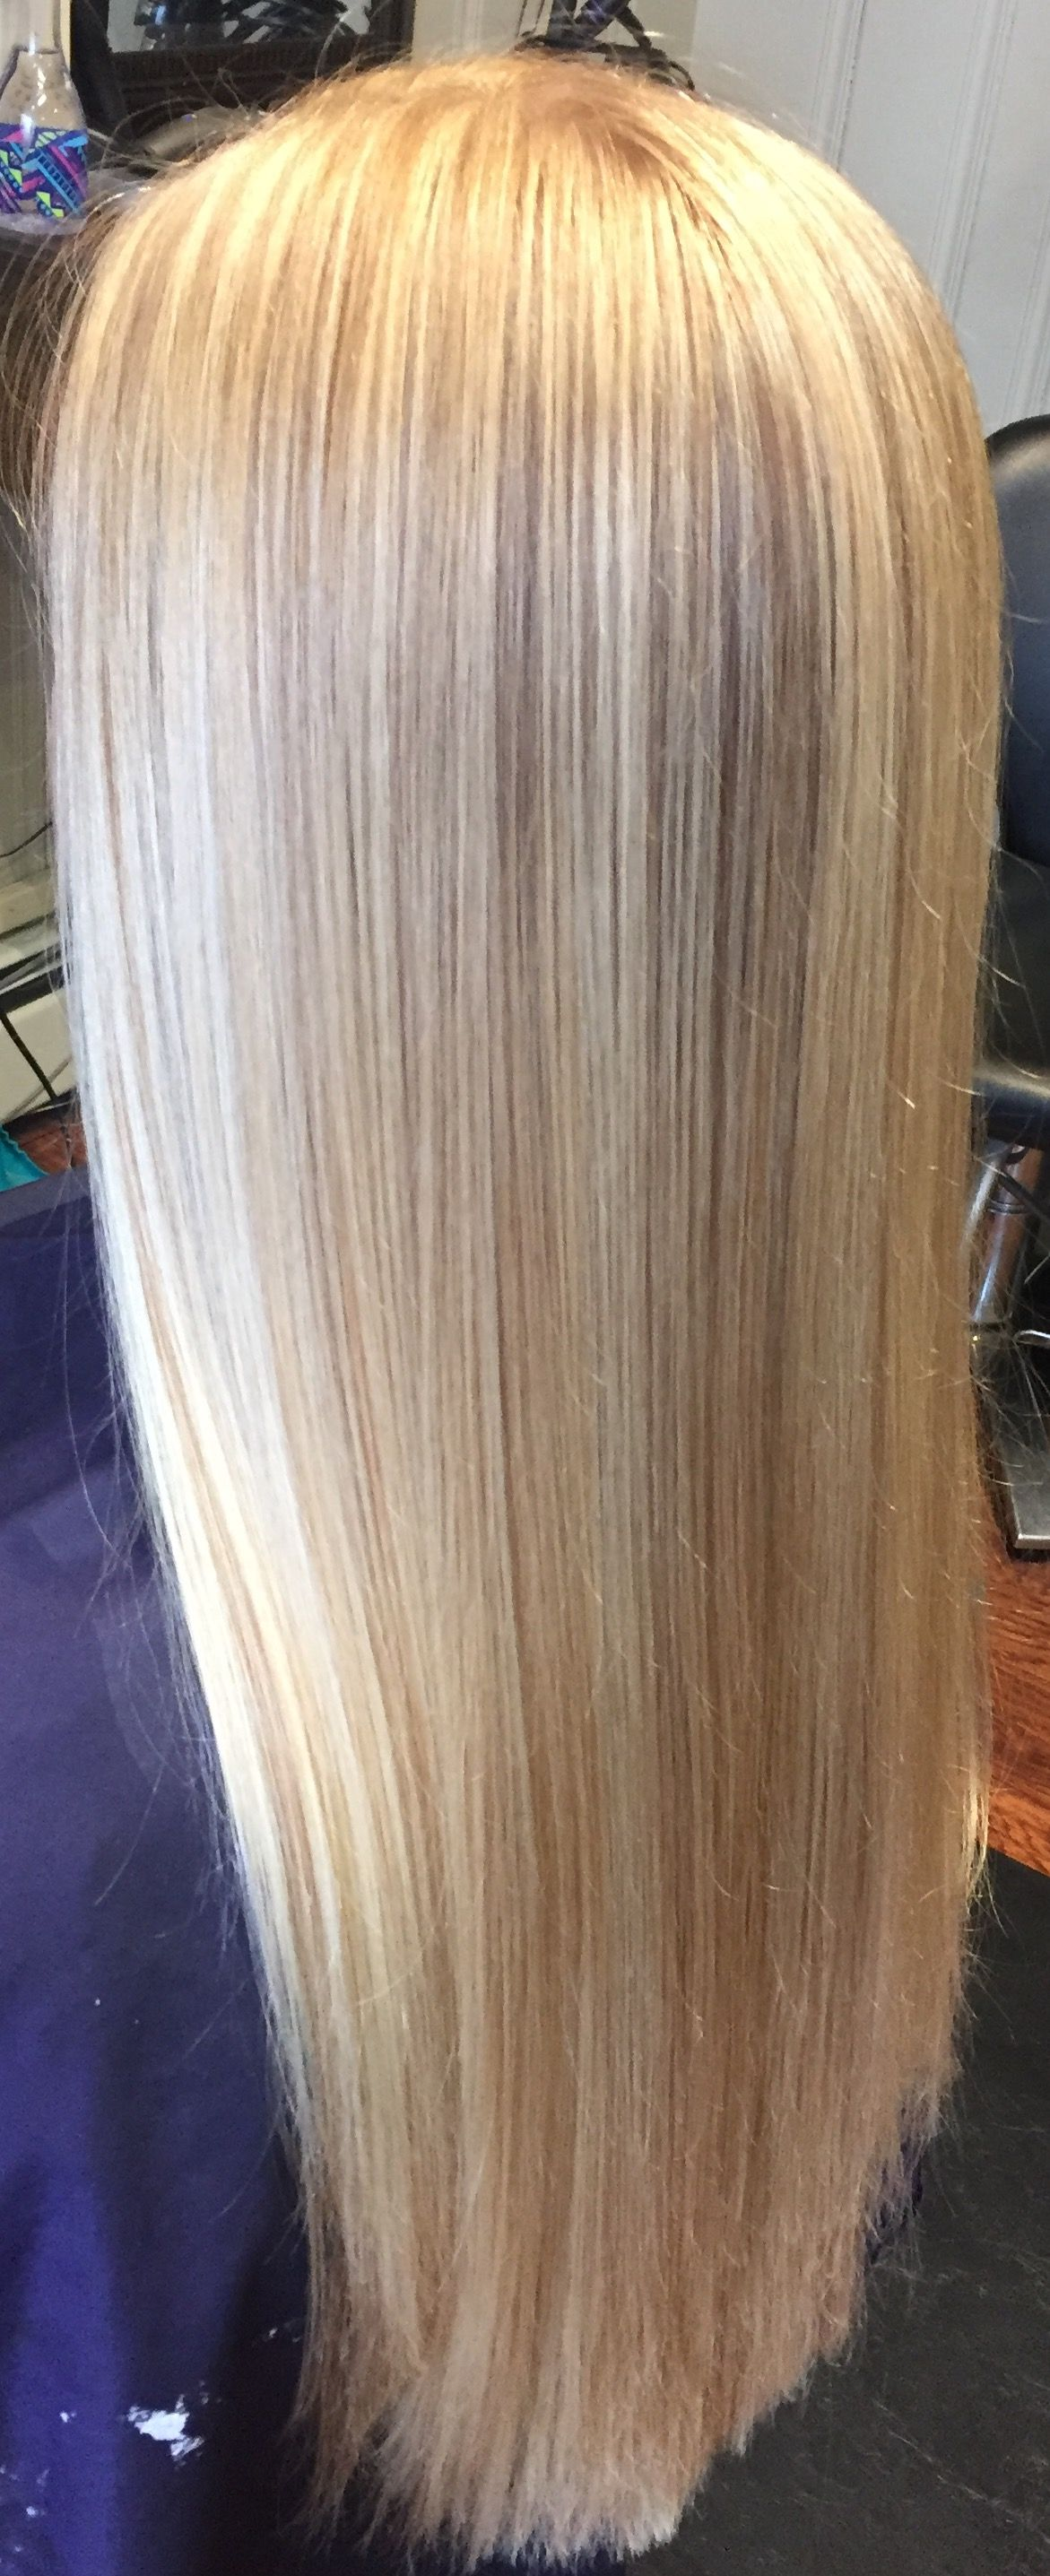 Light Blonde Highlights On Natural Strawberry Blonde Hair Light Blonde Highlights Blonde Hair With Highlights Light Blonde Hair